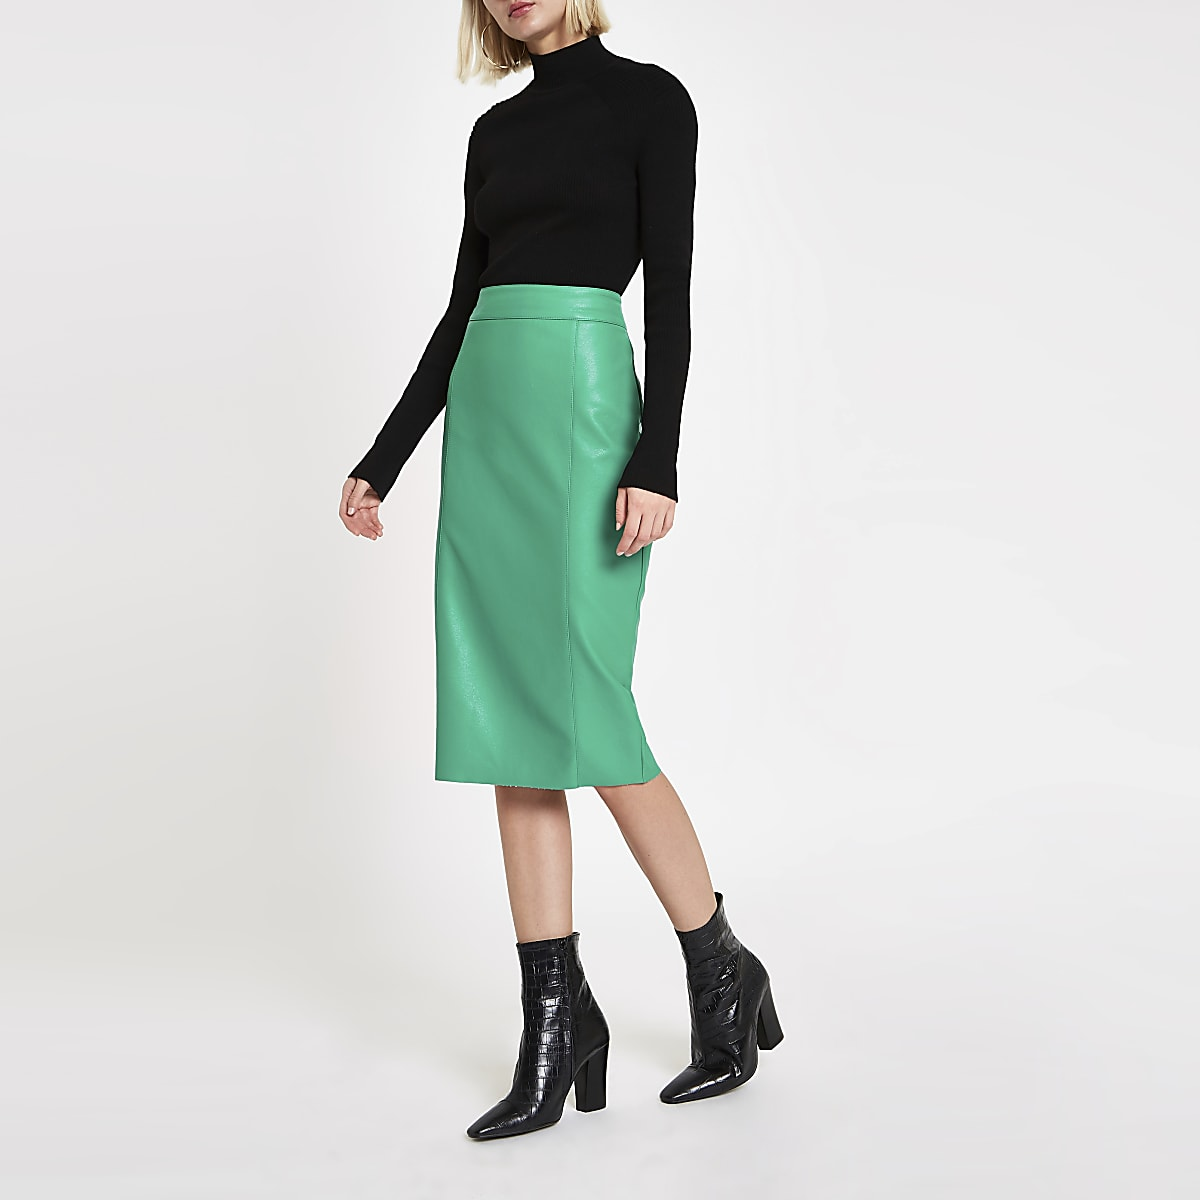 sneakers detailing arriving Bright green faux leather pencil skirt